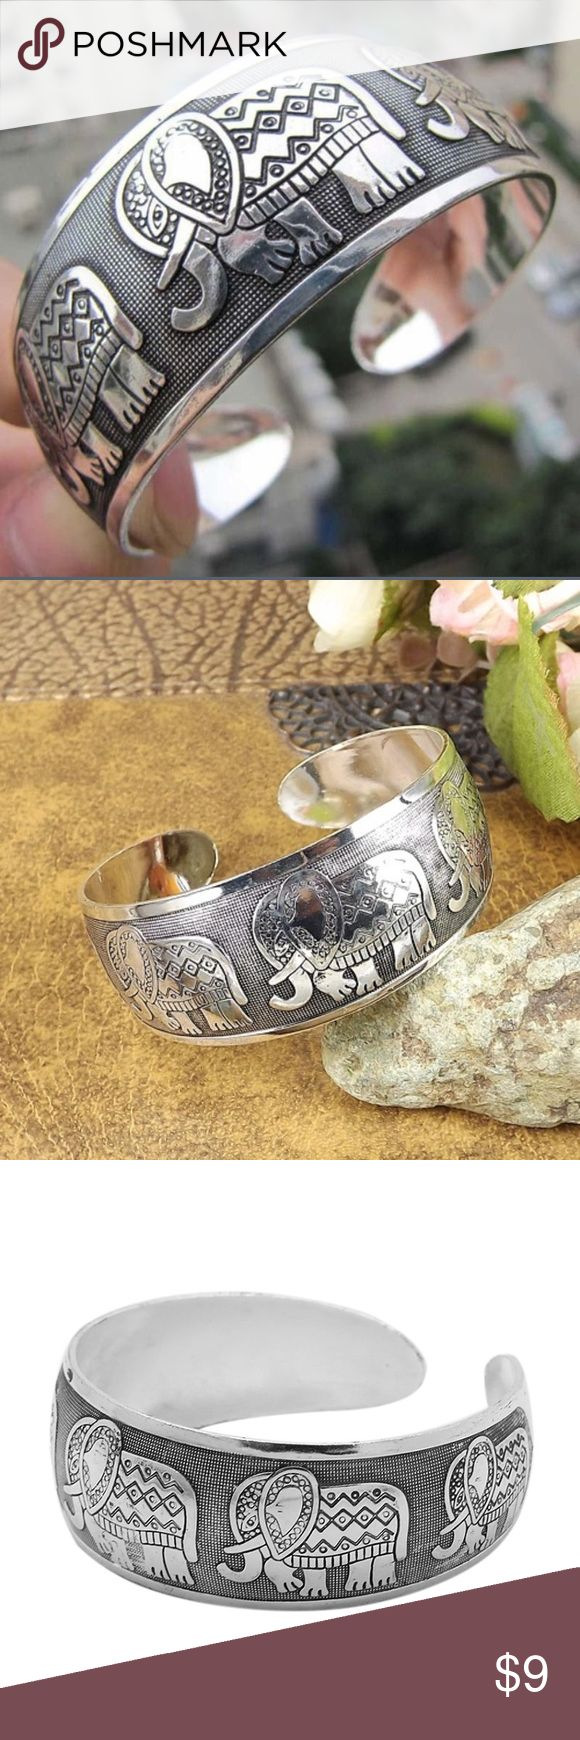 Tibetan Silver Elephant Cuff Bracelet Boho elephant bangle bracelet 💫 Bracelet is adjustable to fit any size wrist. Perfect for stacking and layering, or just wearing alone as a statement piece! Jewelry Bracelets